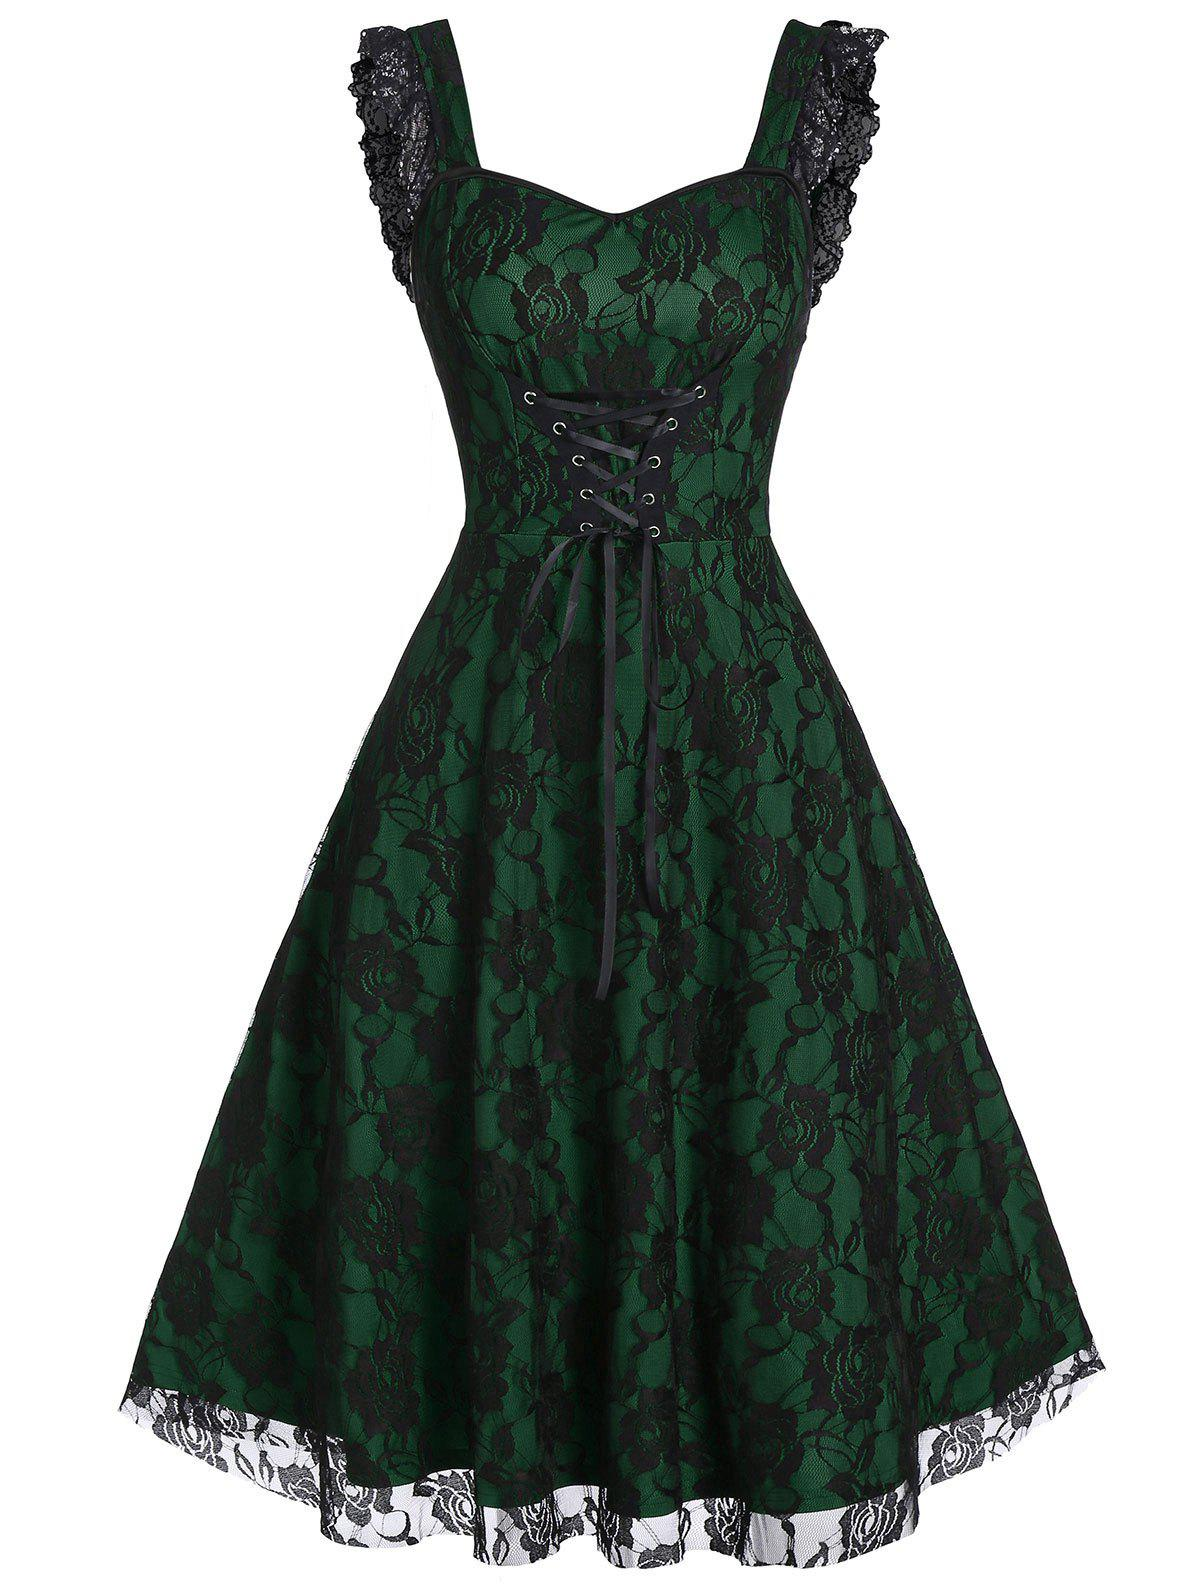 Lace-up A Line Sweetheart Collar Rose Lace Dress - MEDIUM SEA GREEN 2XL